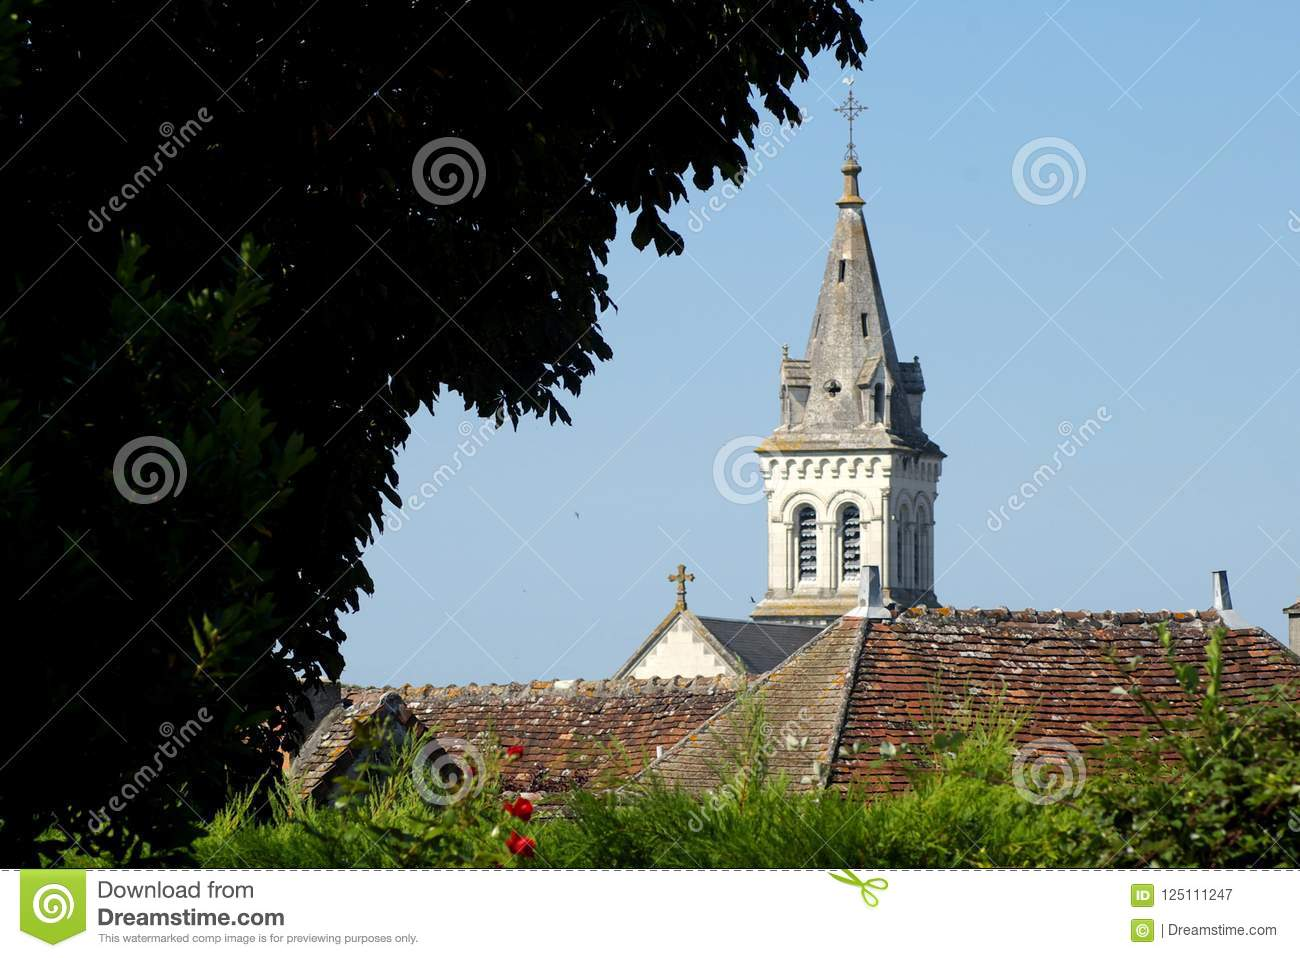 Church and rooftops in the Indre region of central France